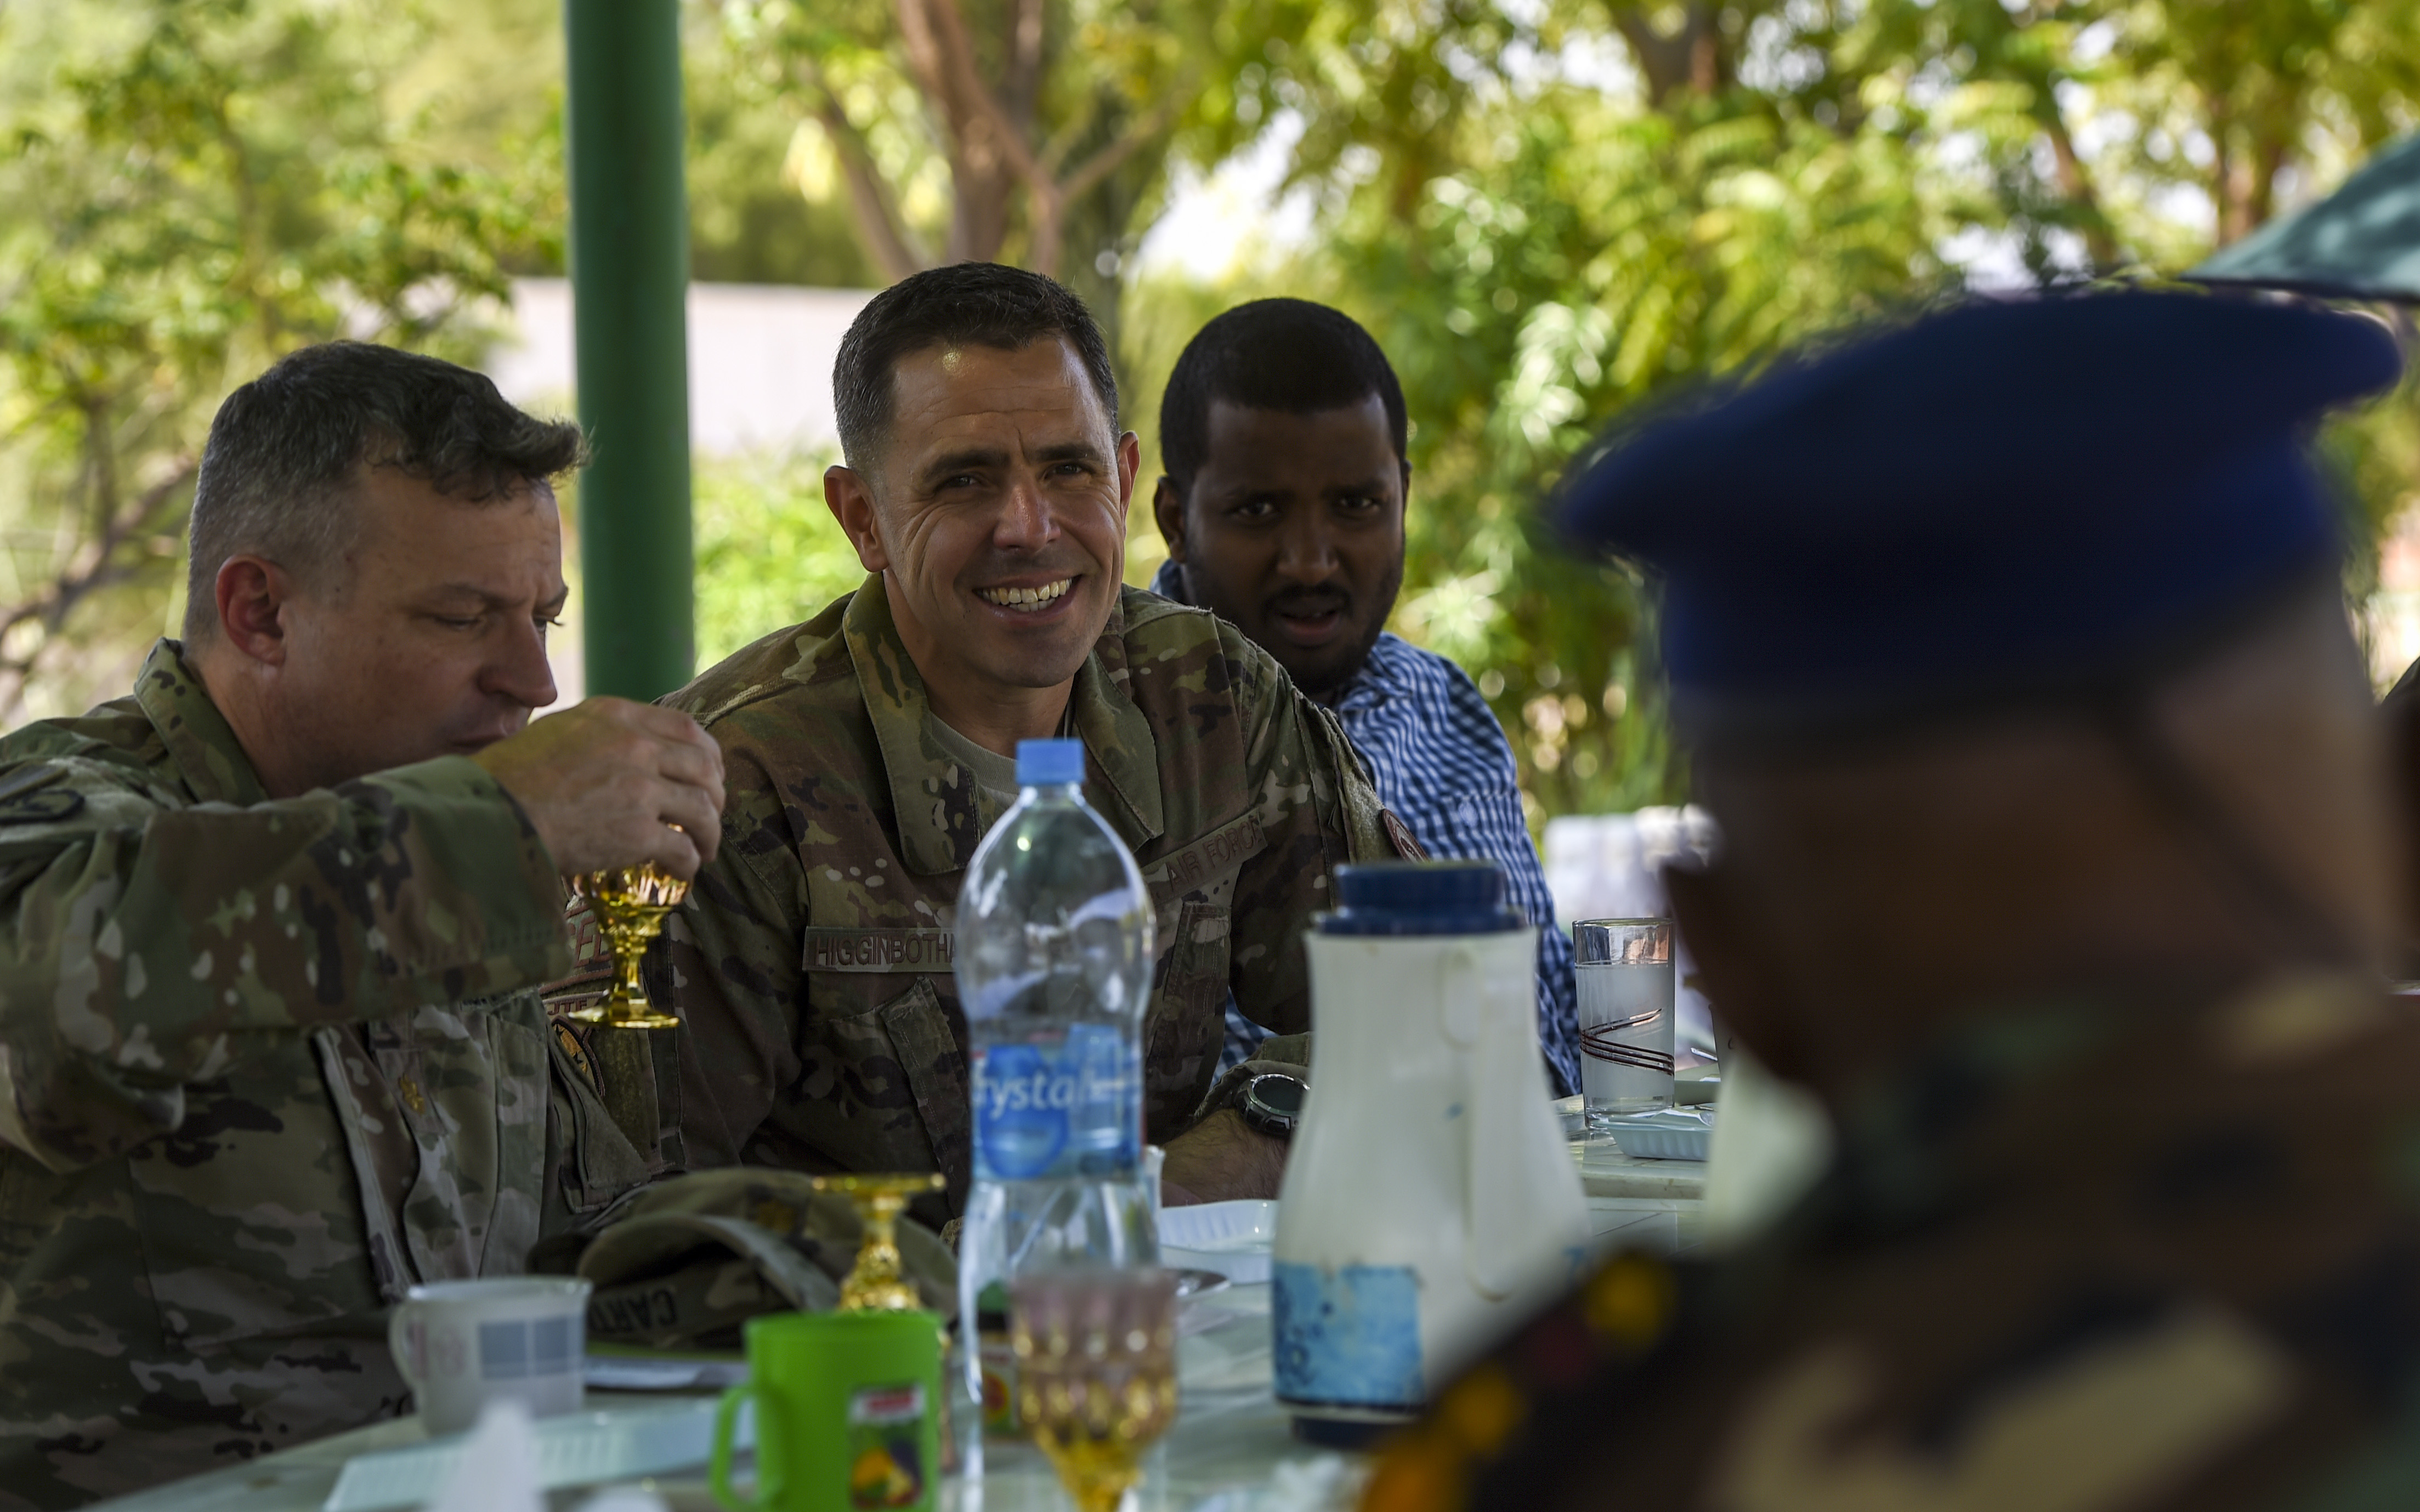 U.S. Air Force Chief Master Sgt. Benjamin Higginbotham, Combined Joint Task Force - Horn of Africa command senior enlisted leader, listens to Djibouti Armed Forces (FAD) Lt. Col. A. Omar during a visit to the FAD military training center at Holhol, Djibouti, Nov. 14, 2017. Higginbotham accompanied leaders of the Kentucky National Guard as they visited their FAD partners. The Kentucky National Guard and the FAD are partners through the State Partnership Program. (U.S. Air Force photo by Staff Sgt. Timothy Moore)